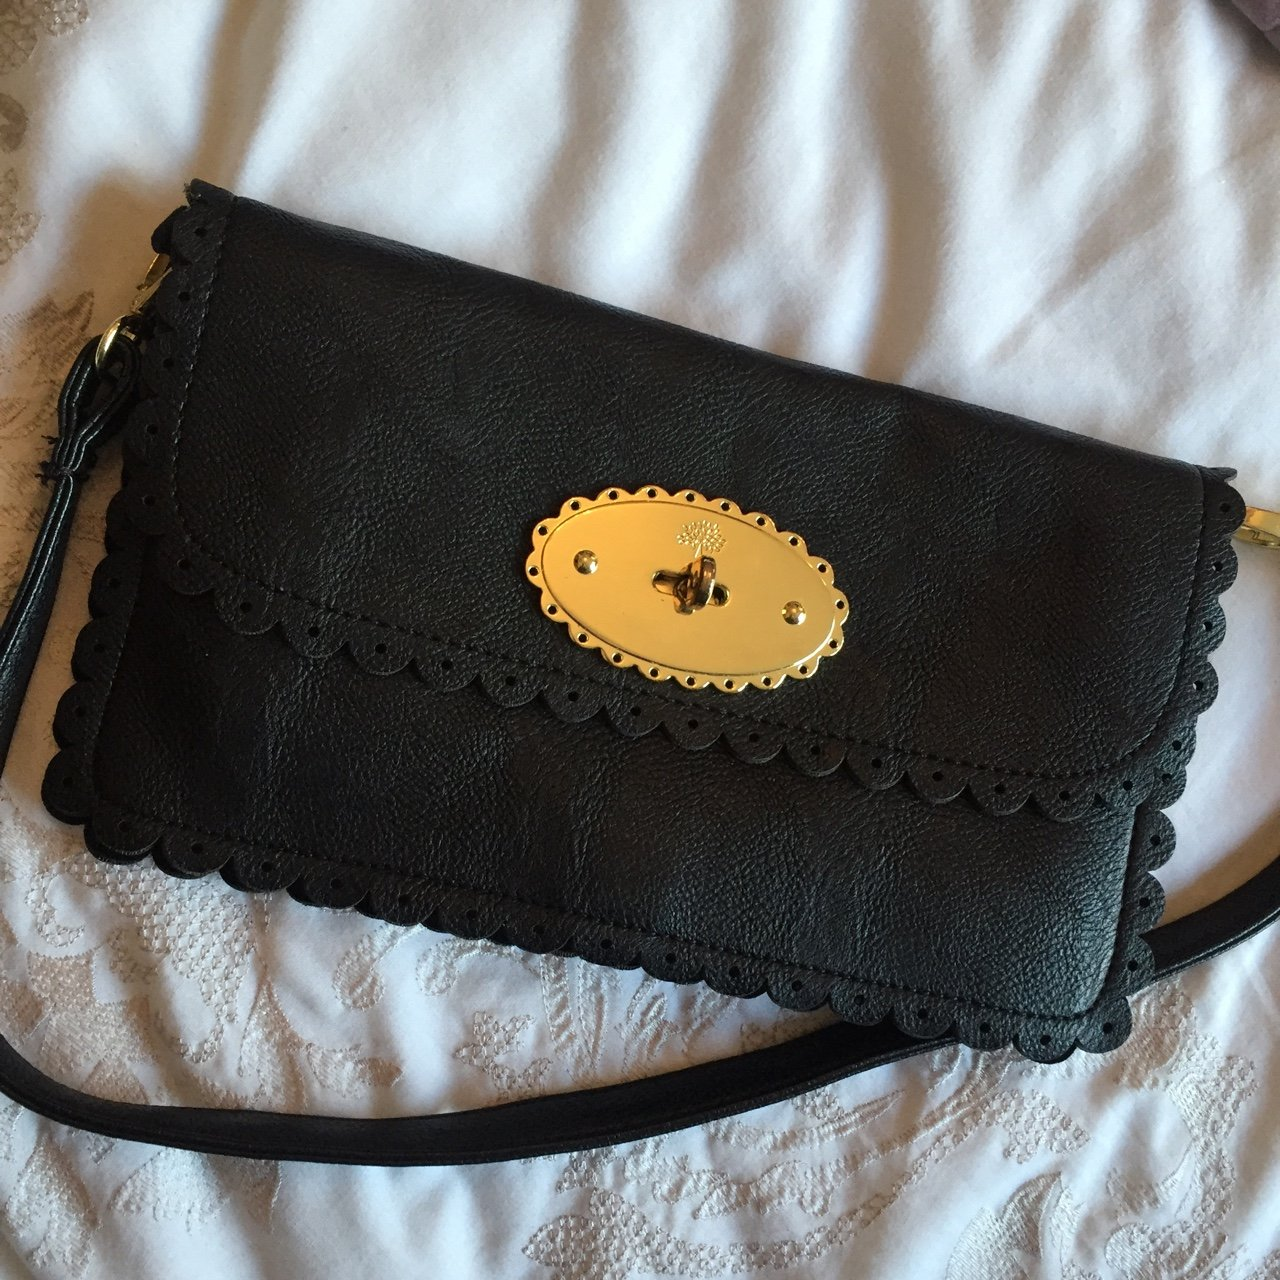 37c05ce1cc6b More photos of the mulberry style clutch for sale! - Depop